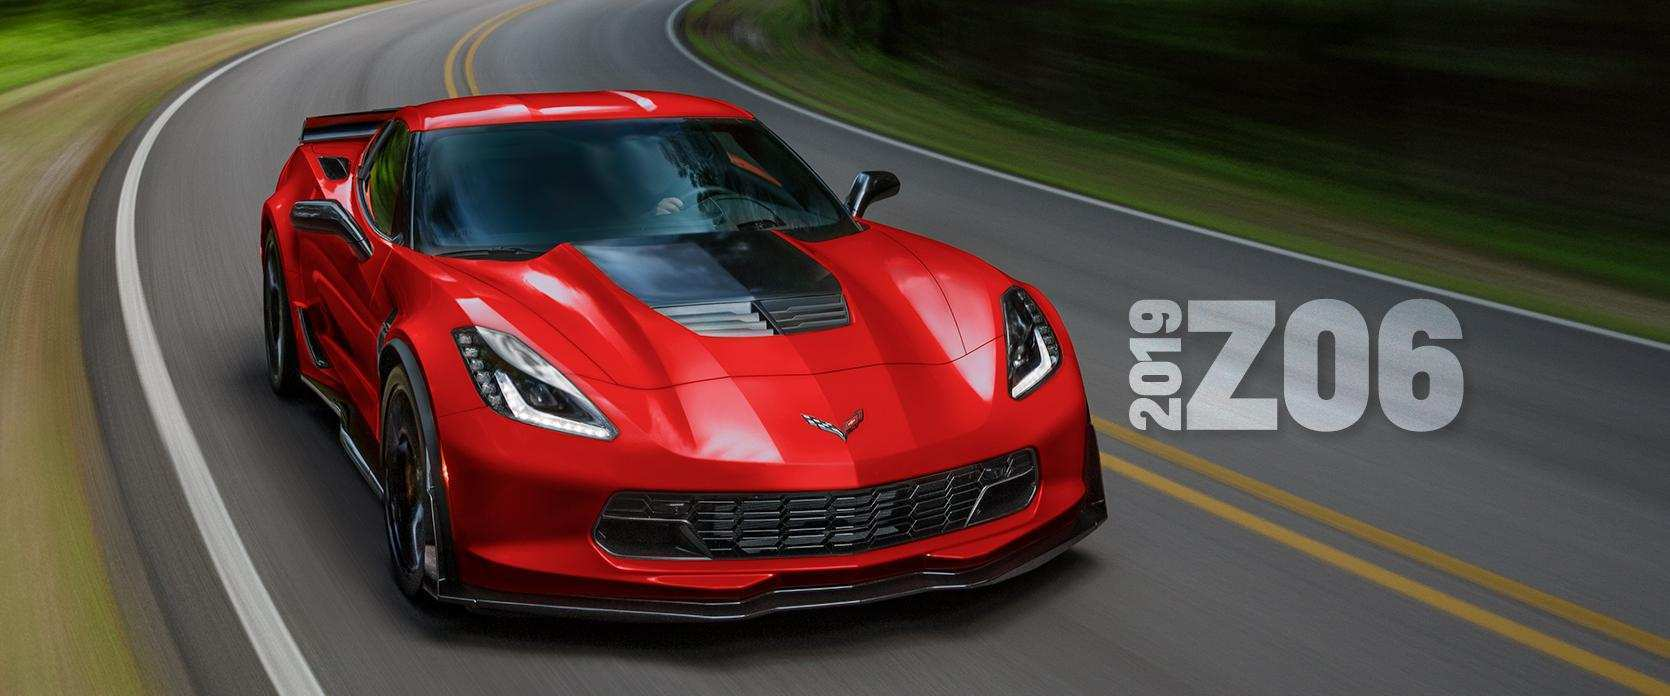 74 All New 2019 Corvette Stingray First Drive